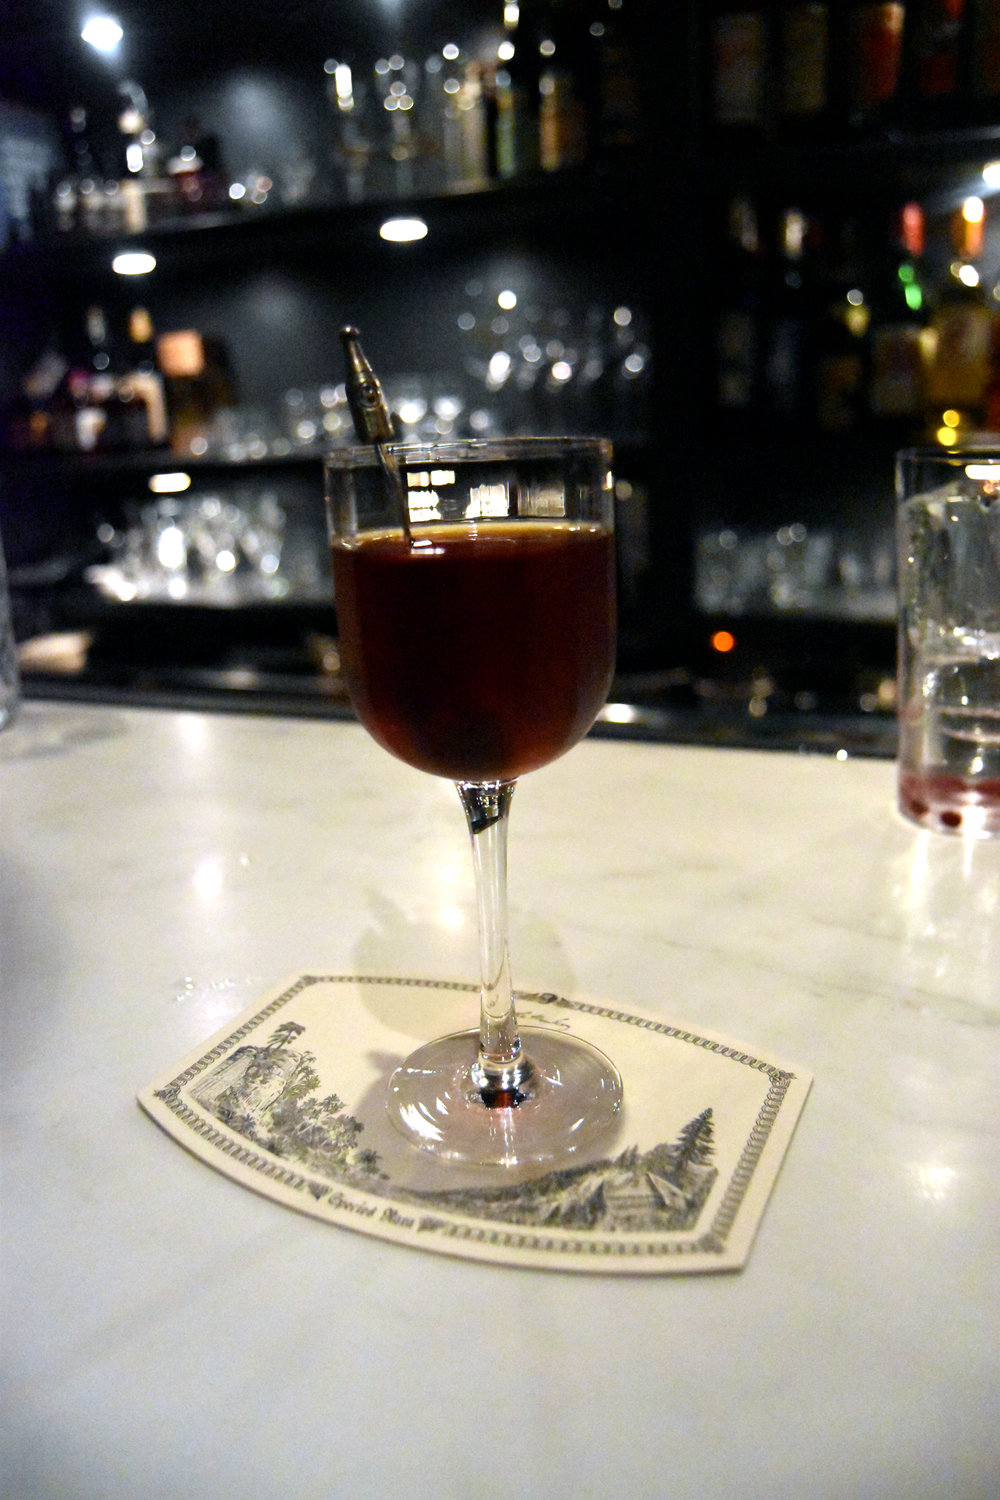 """Who is the Murderer?"": Glenlivet 12y, Campari, Earl Gray Tea, Punt e mes, Suze, Underberg, Sea Salt, and All Spice. We were told it was called that because who is the real ingredient that gets you drunk?"